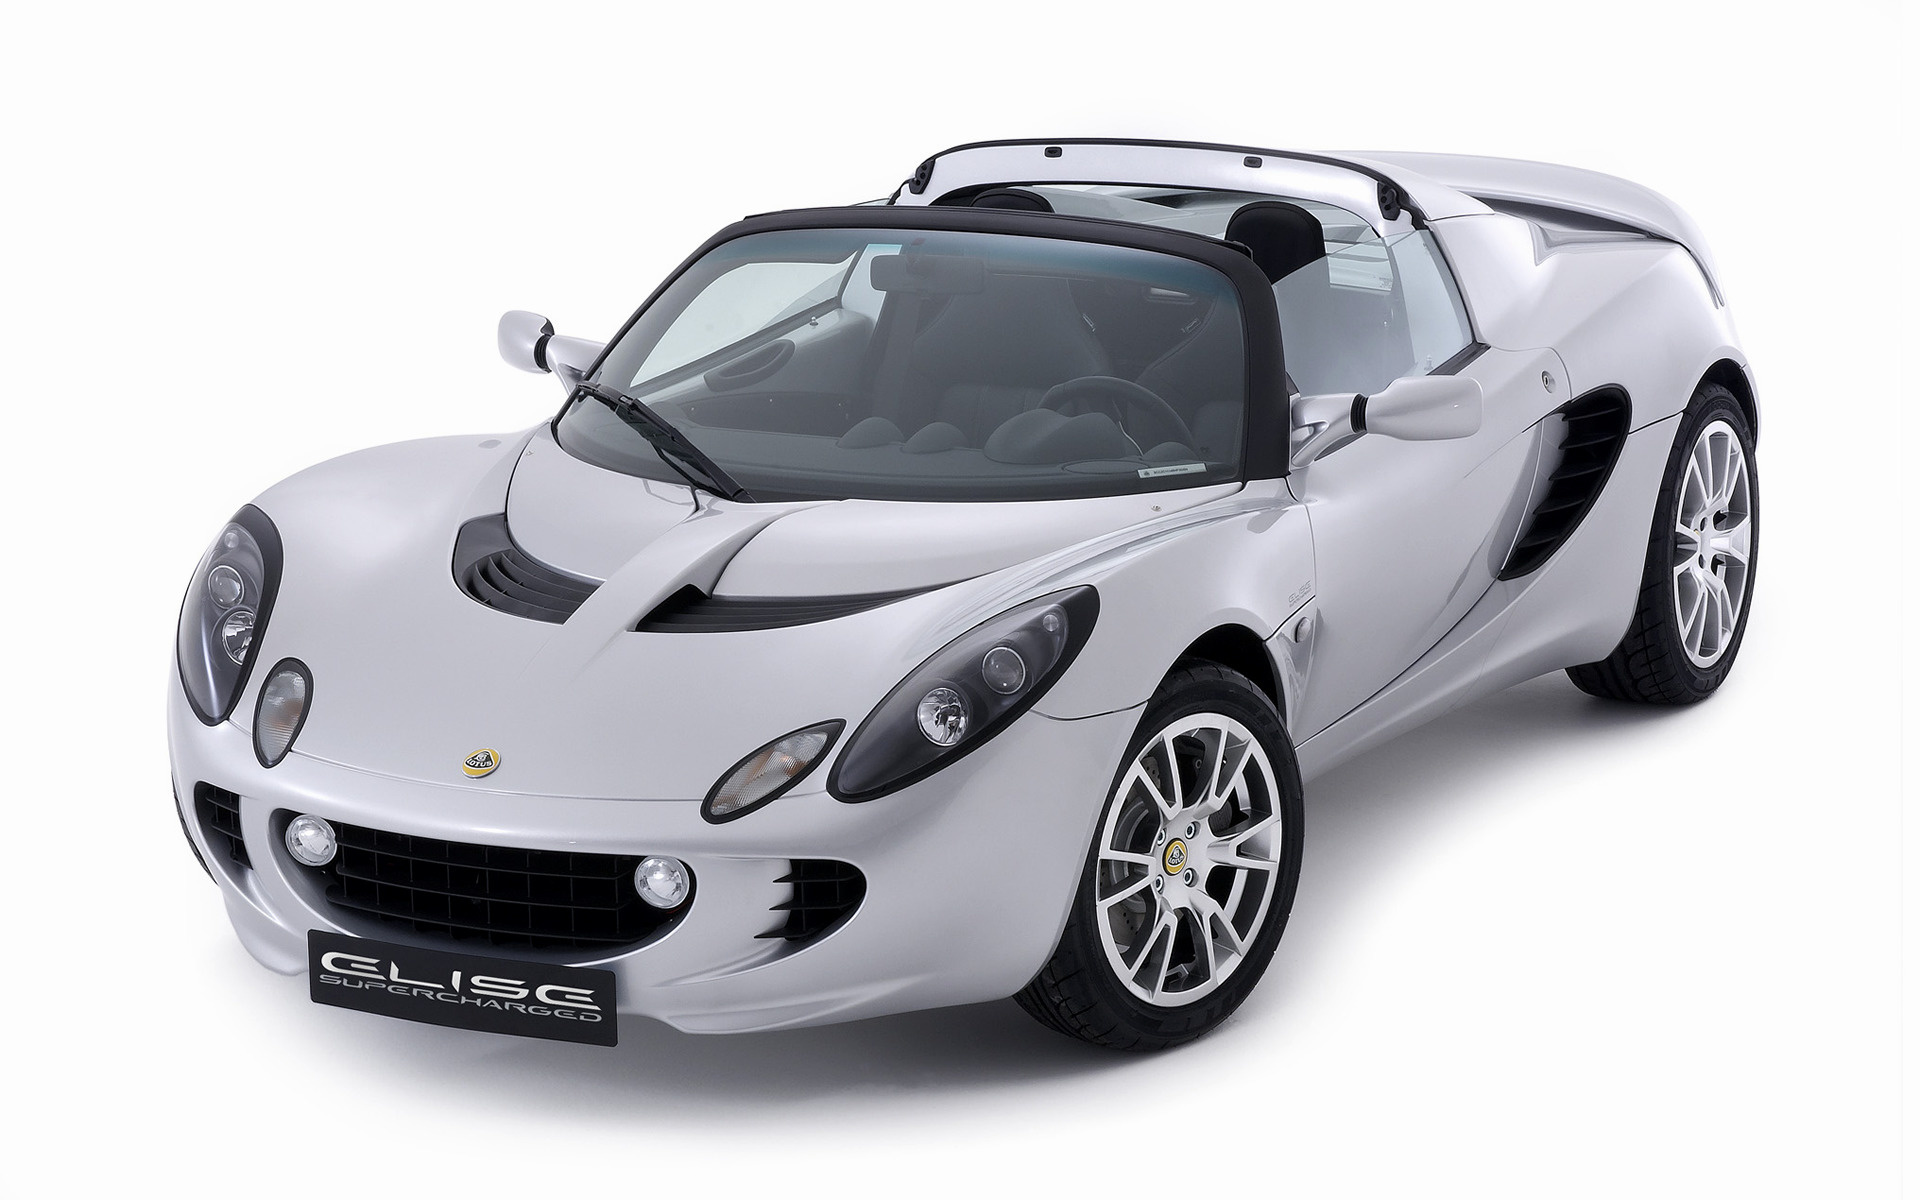 https://www.carpixel.net/w/fe53f1cfcb55d18799cd5c4dc86d606d/lotus-elise-sc-car-wallpaper-42084.jpg